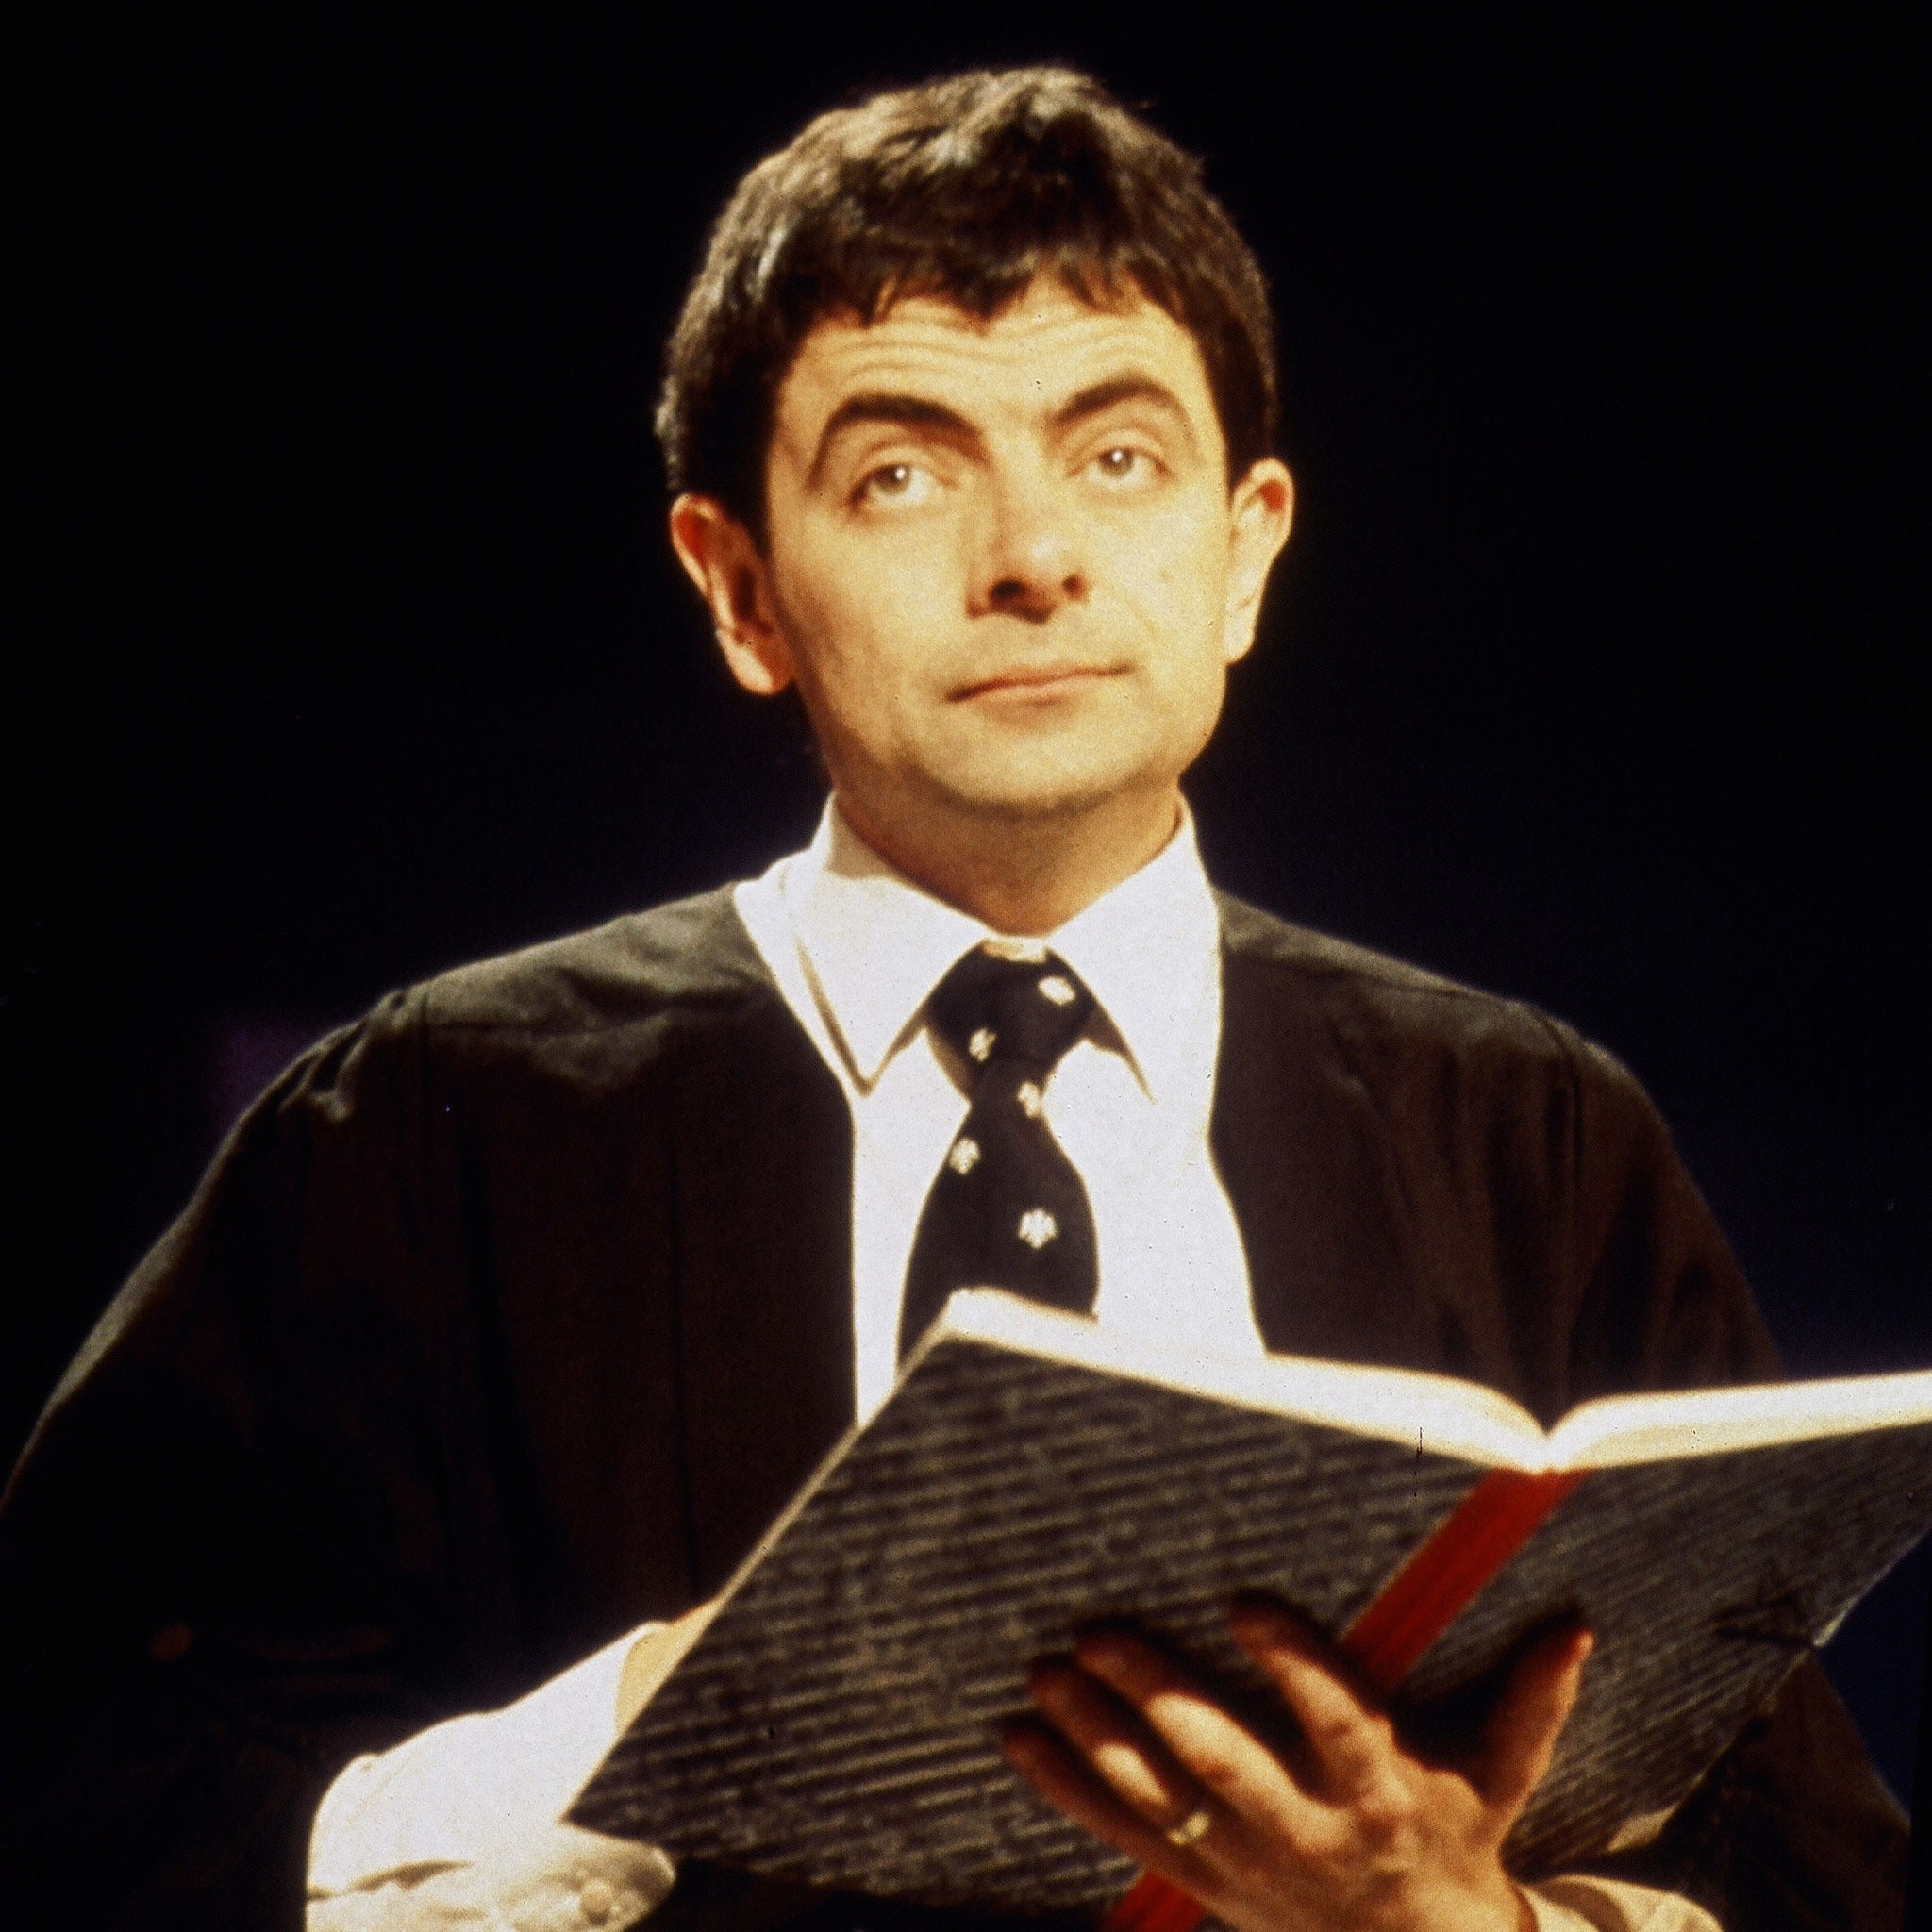 Animated Wallpaper Windows 8 Free Download Mr Bean Wallpapers 73 Images